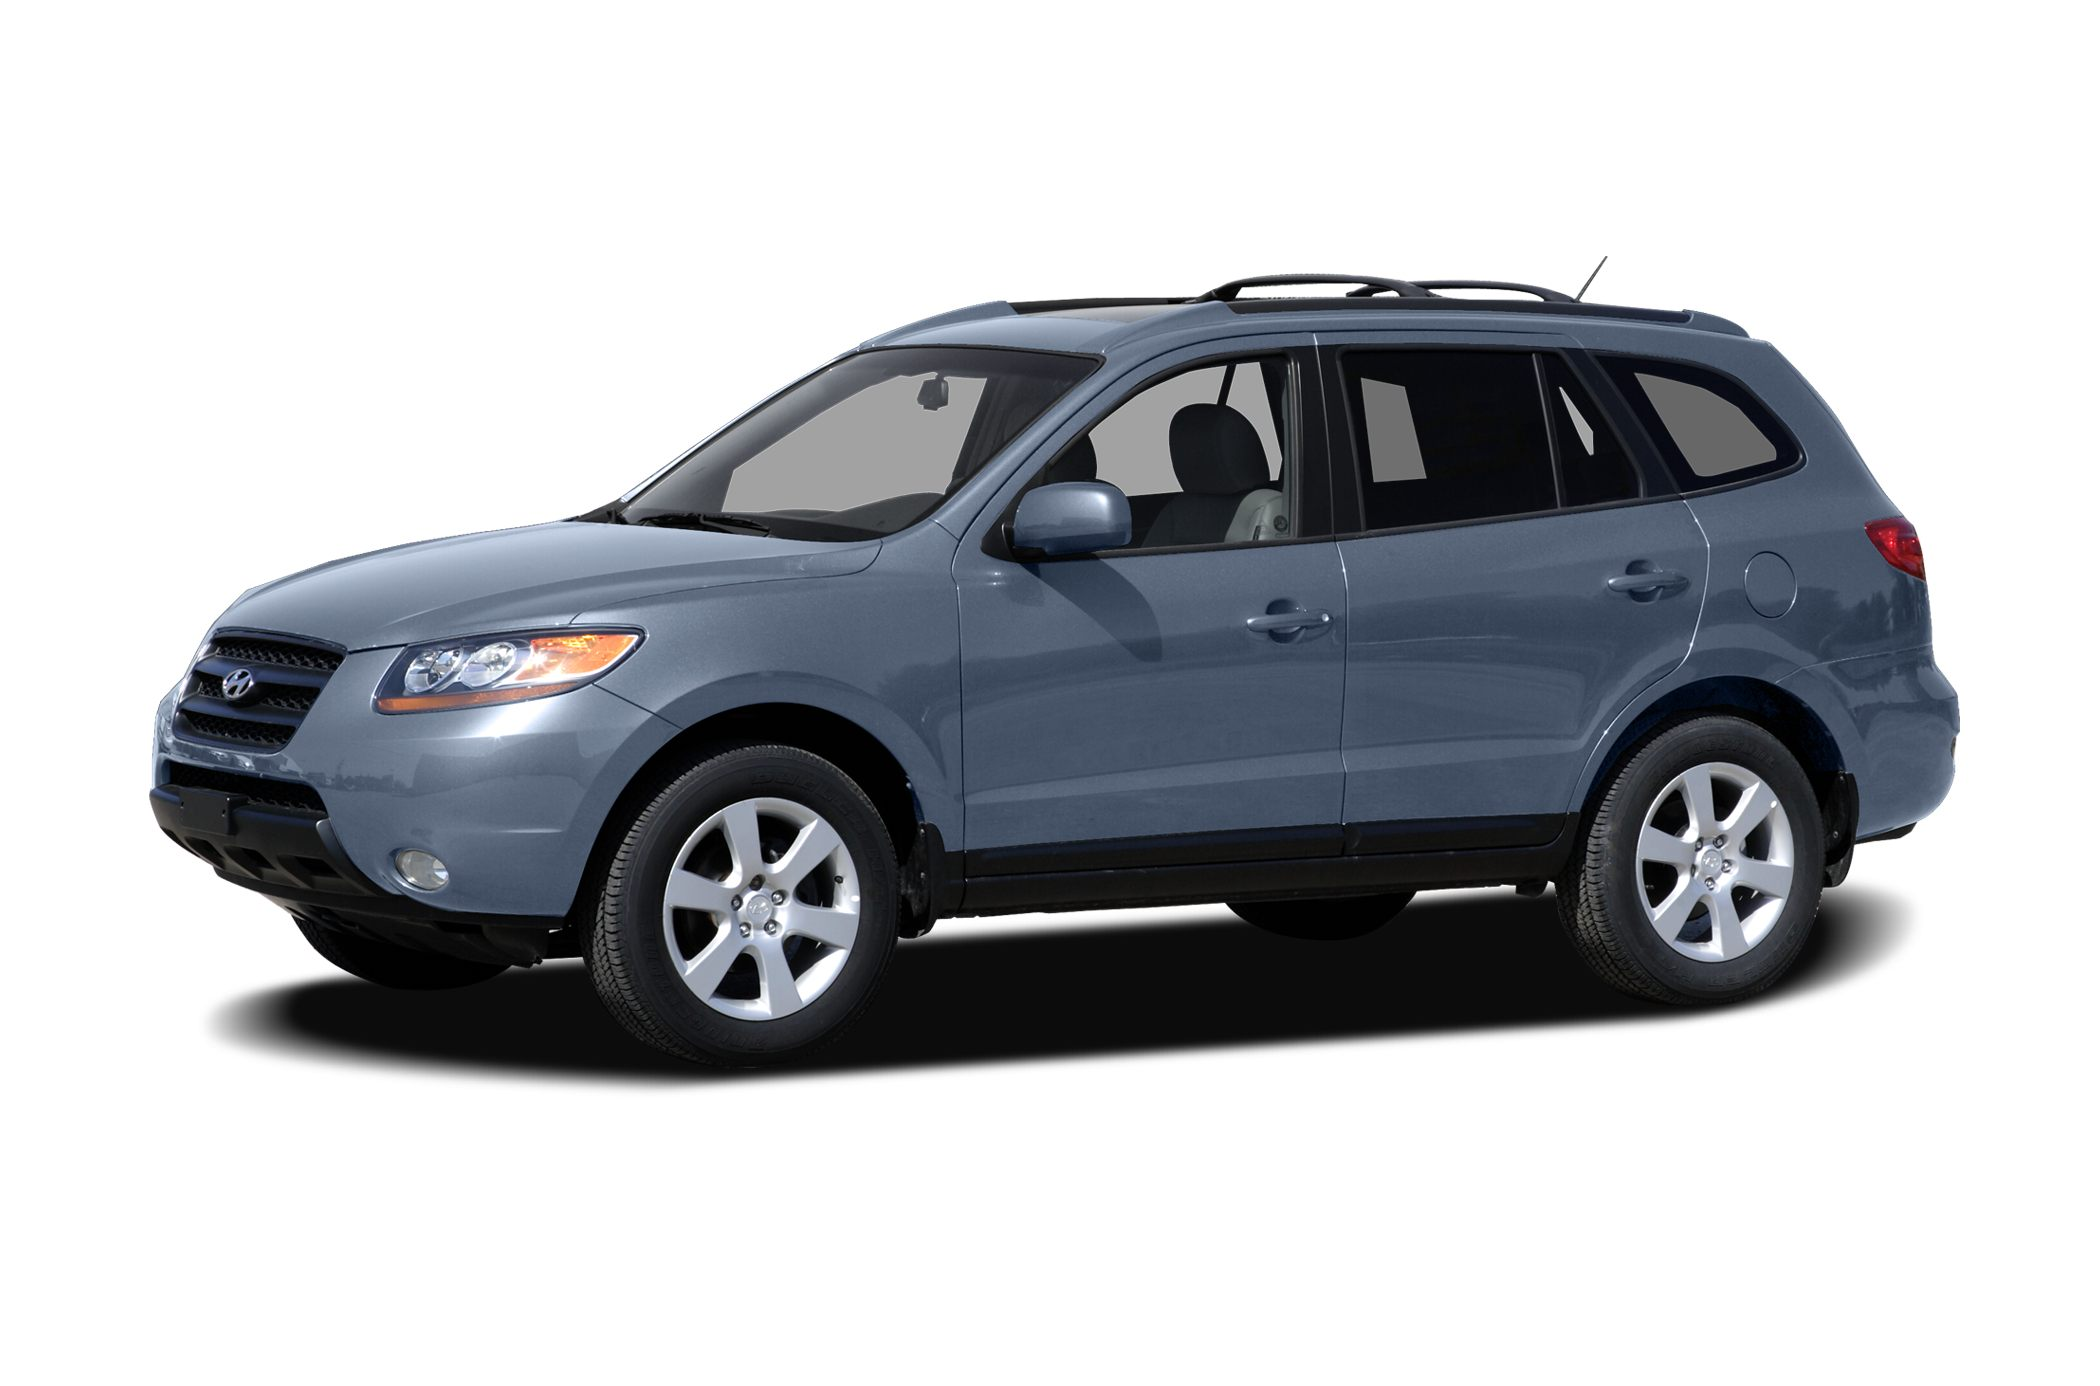 2007 Hyundai Santa Fe SE SUV for sale in Mabank for $4,995 with 144,021 miles